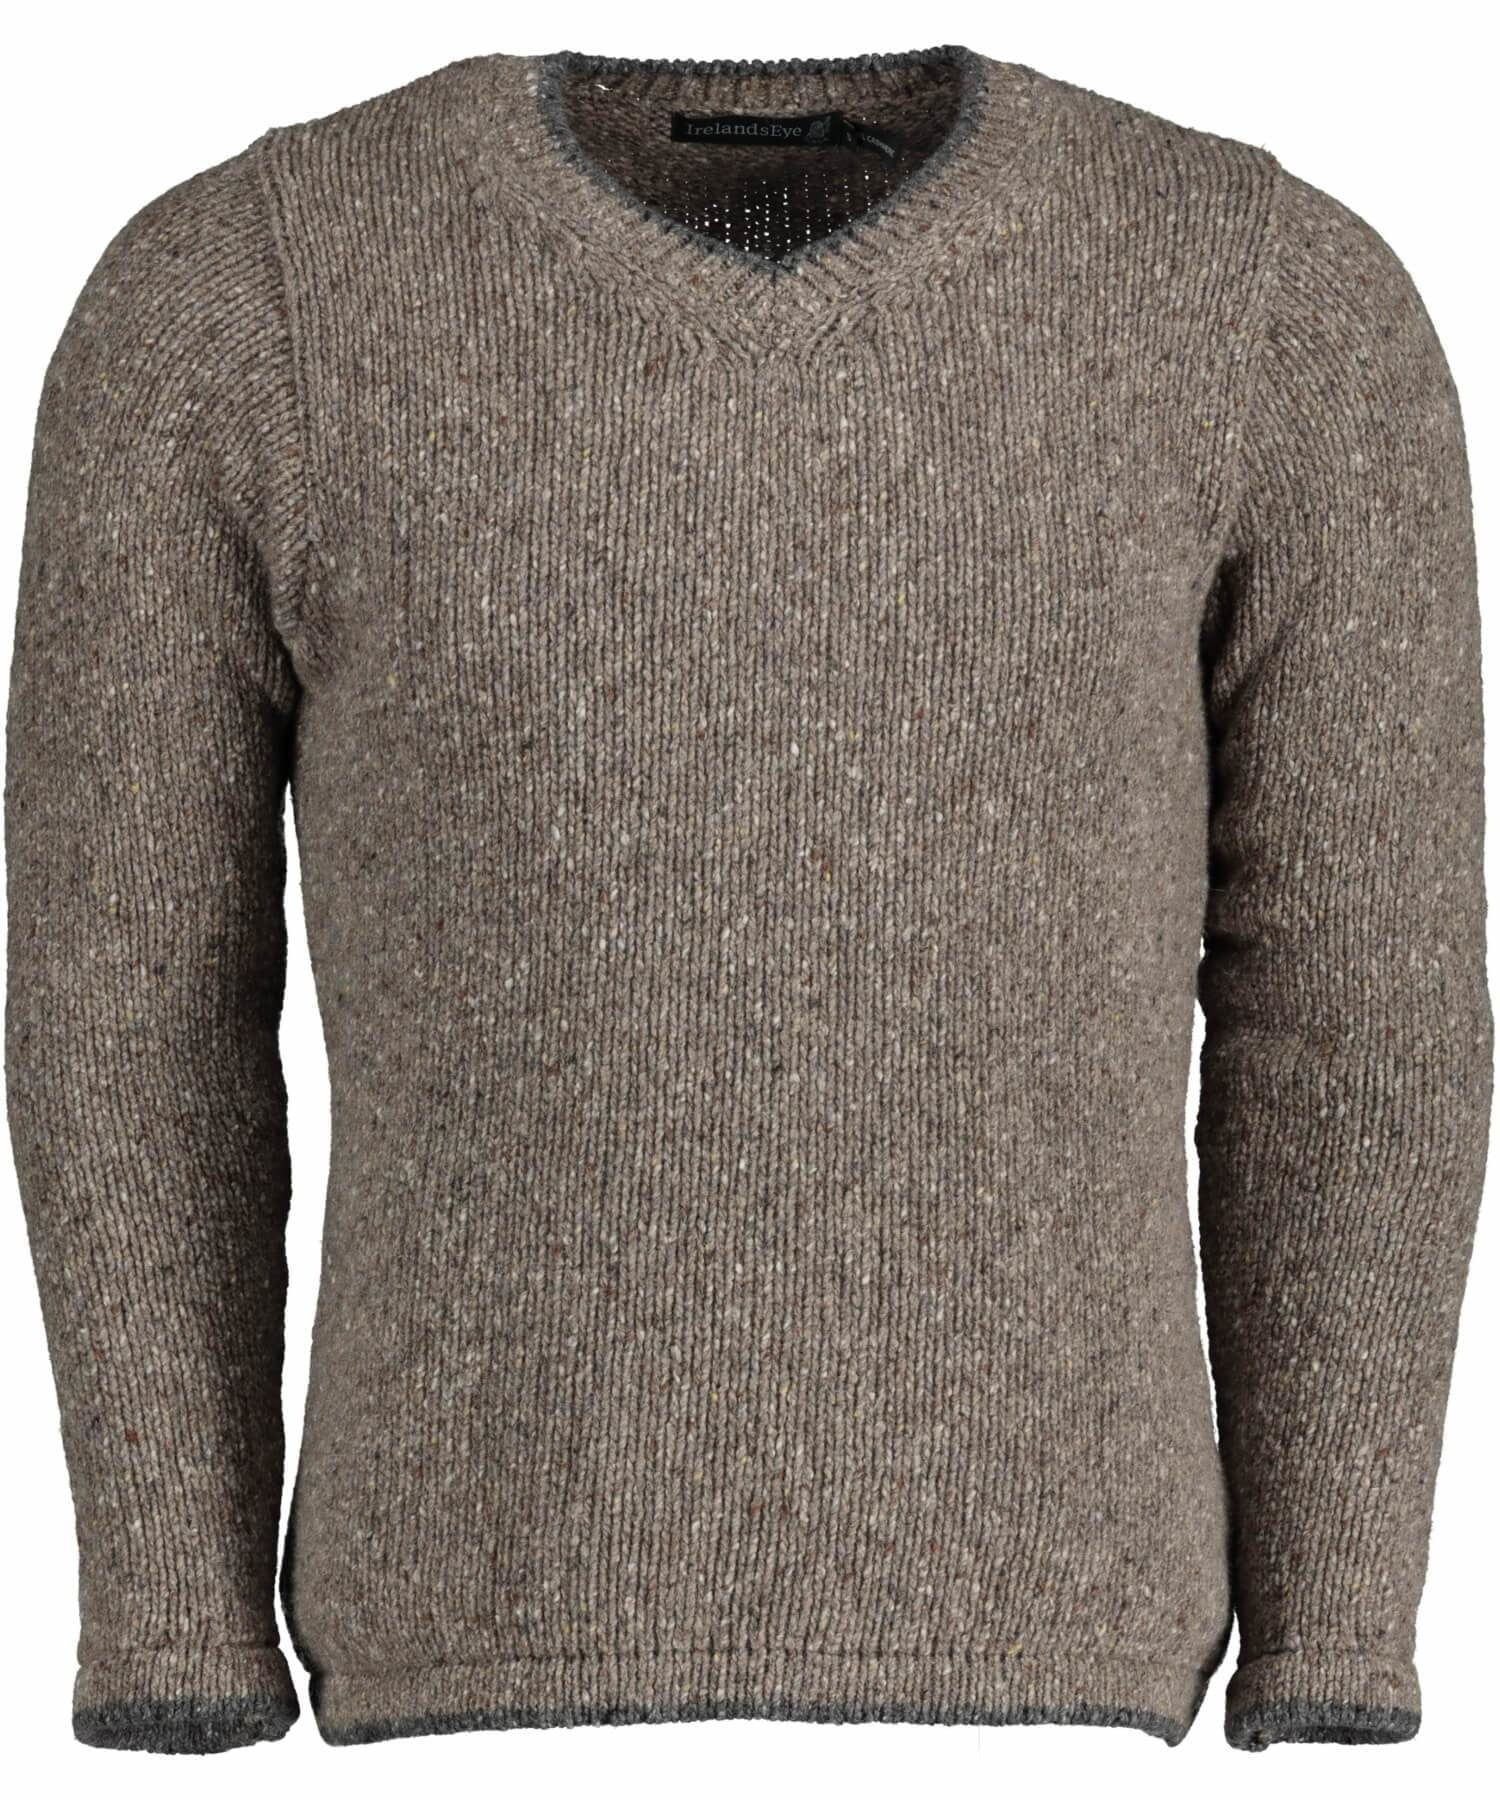 Duncannon V Neck Sweater - Rocky Ground Irelands Eye Mens Sweaters & Cardigans